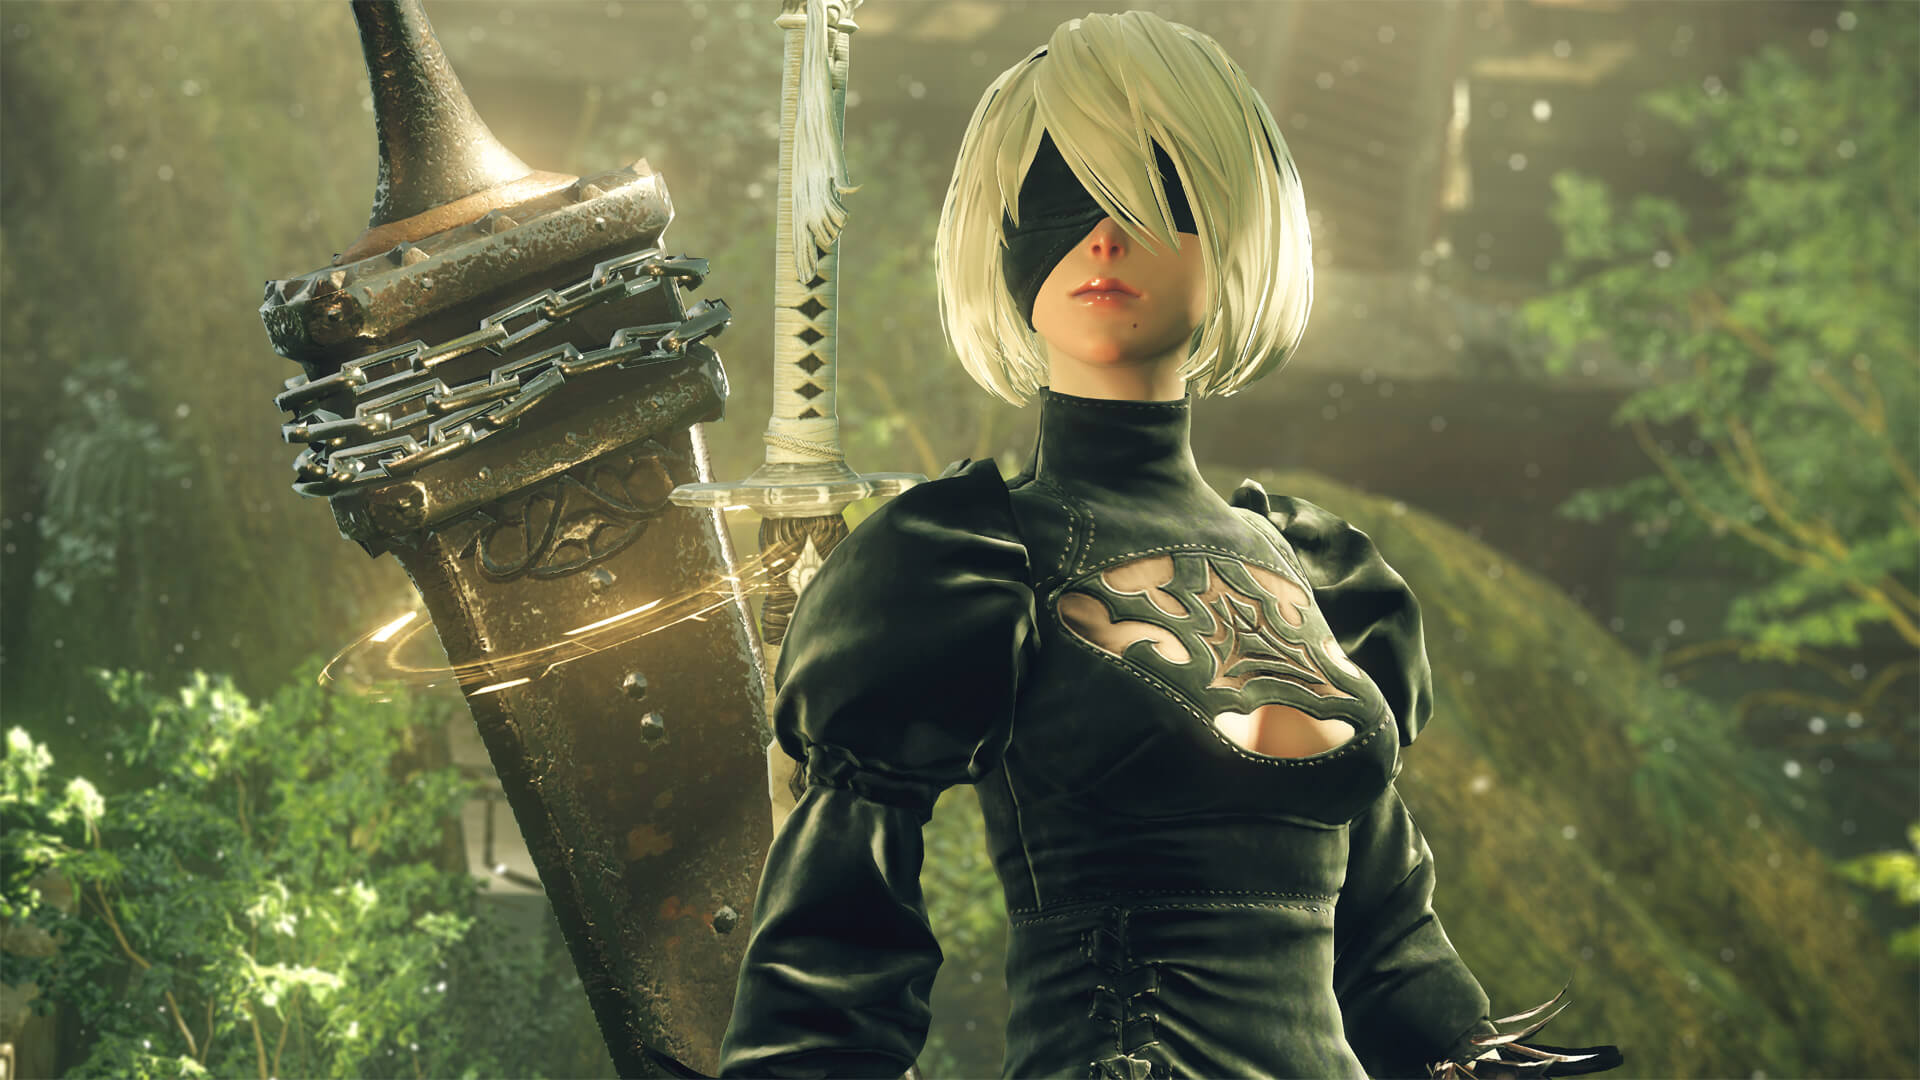 Android woman with black blindfold and black dress with a large sword at her back, standing in a lush, green environment.